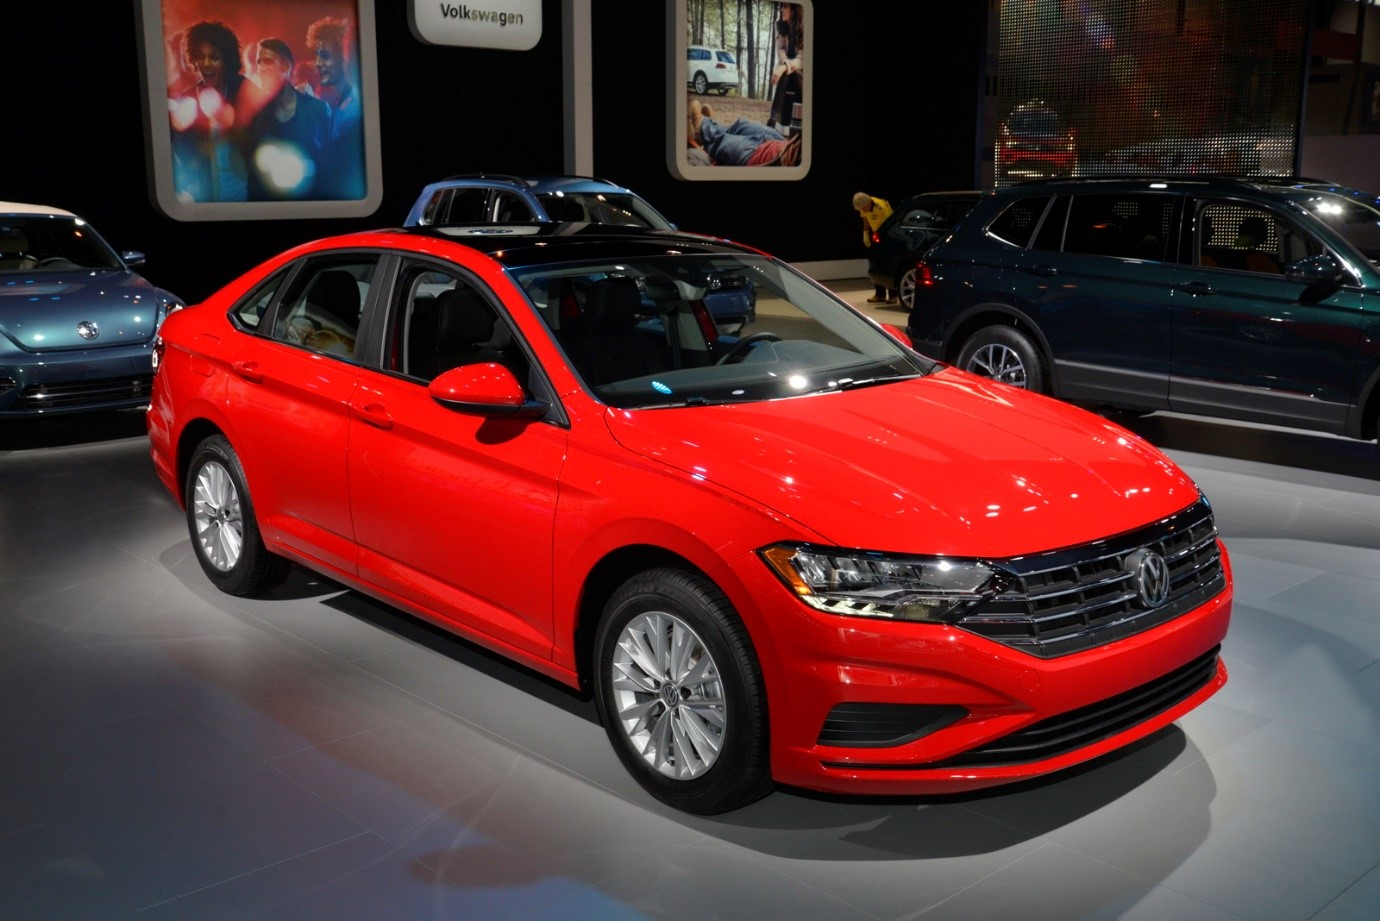 2019 vw jetta ms blog the new generation volkswagen jetta that was launched earlier this year is like a passat on a slightly smaller scale which might suit those who arent publicscrutiny Gallery